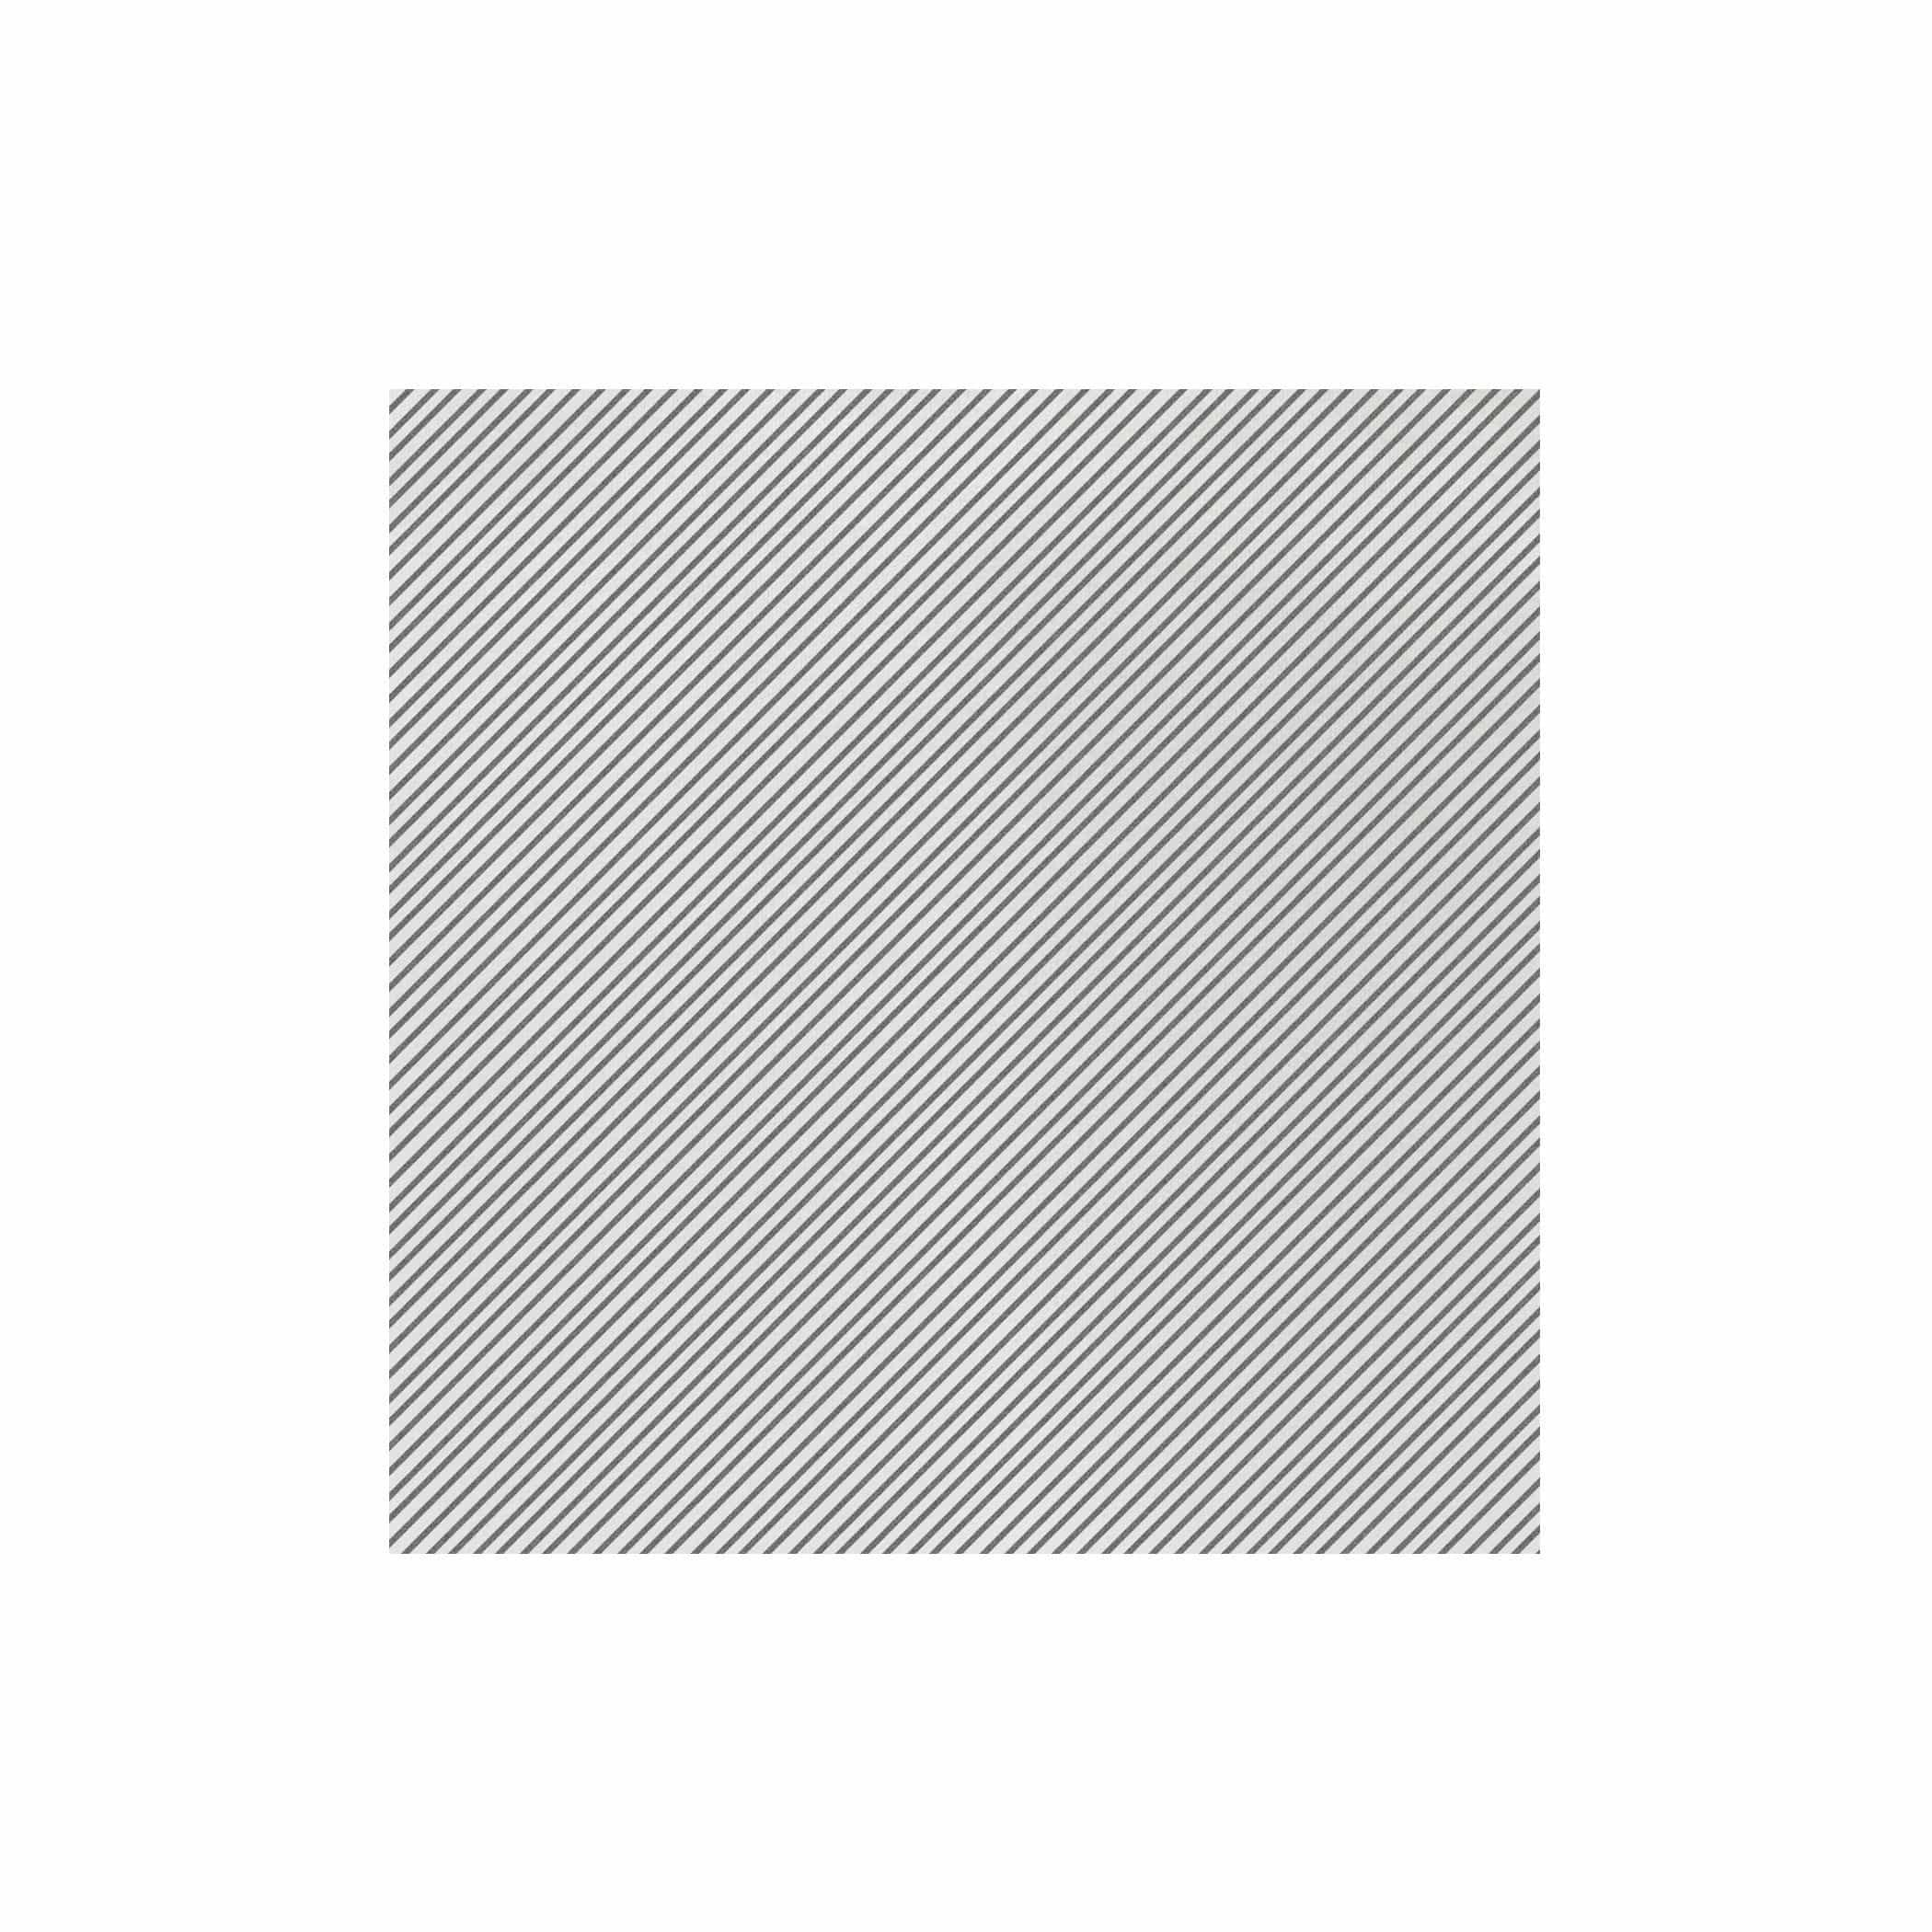 Vietri Papersoft Seersucker Dinner Napkins - Available in 8 colors - Gray / Pack of 20